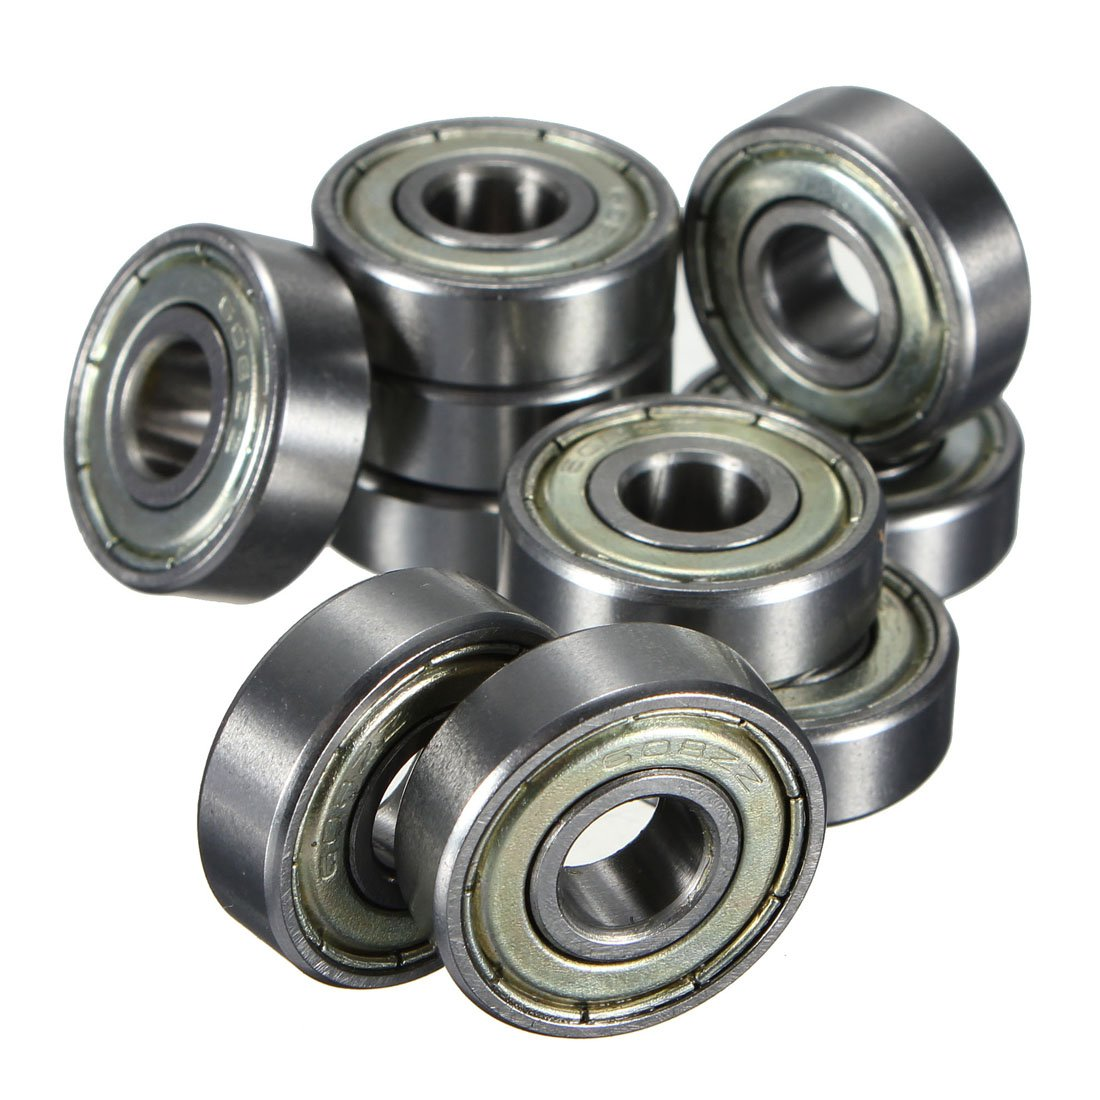 10 pcs. Ball bearings miniature deep groove ball bearings 608 ZZ 8 x 22 x 7mm Bearing Steel image